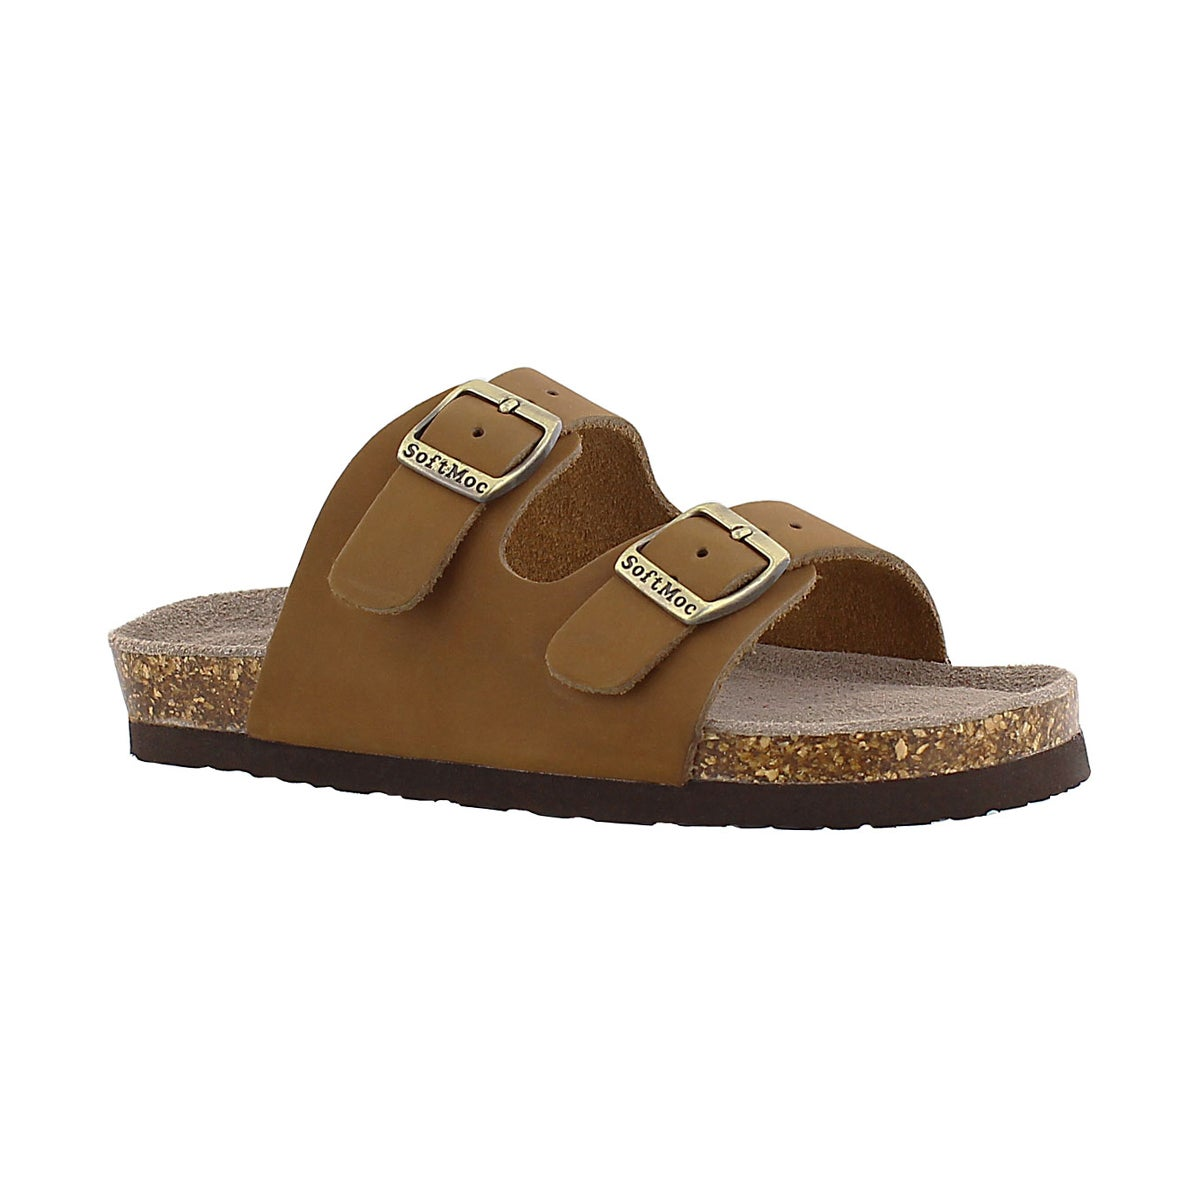 Kids' AURORA 2 tan 2 strap slide sandals